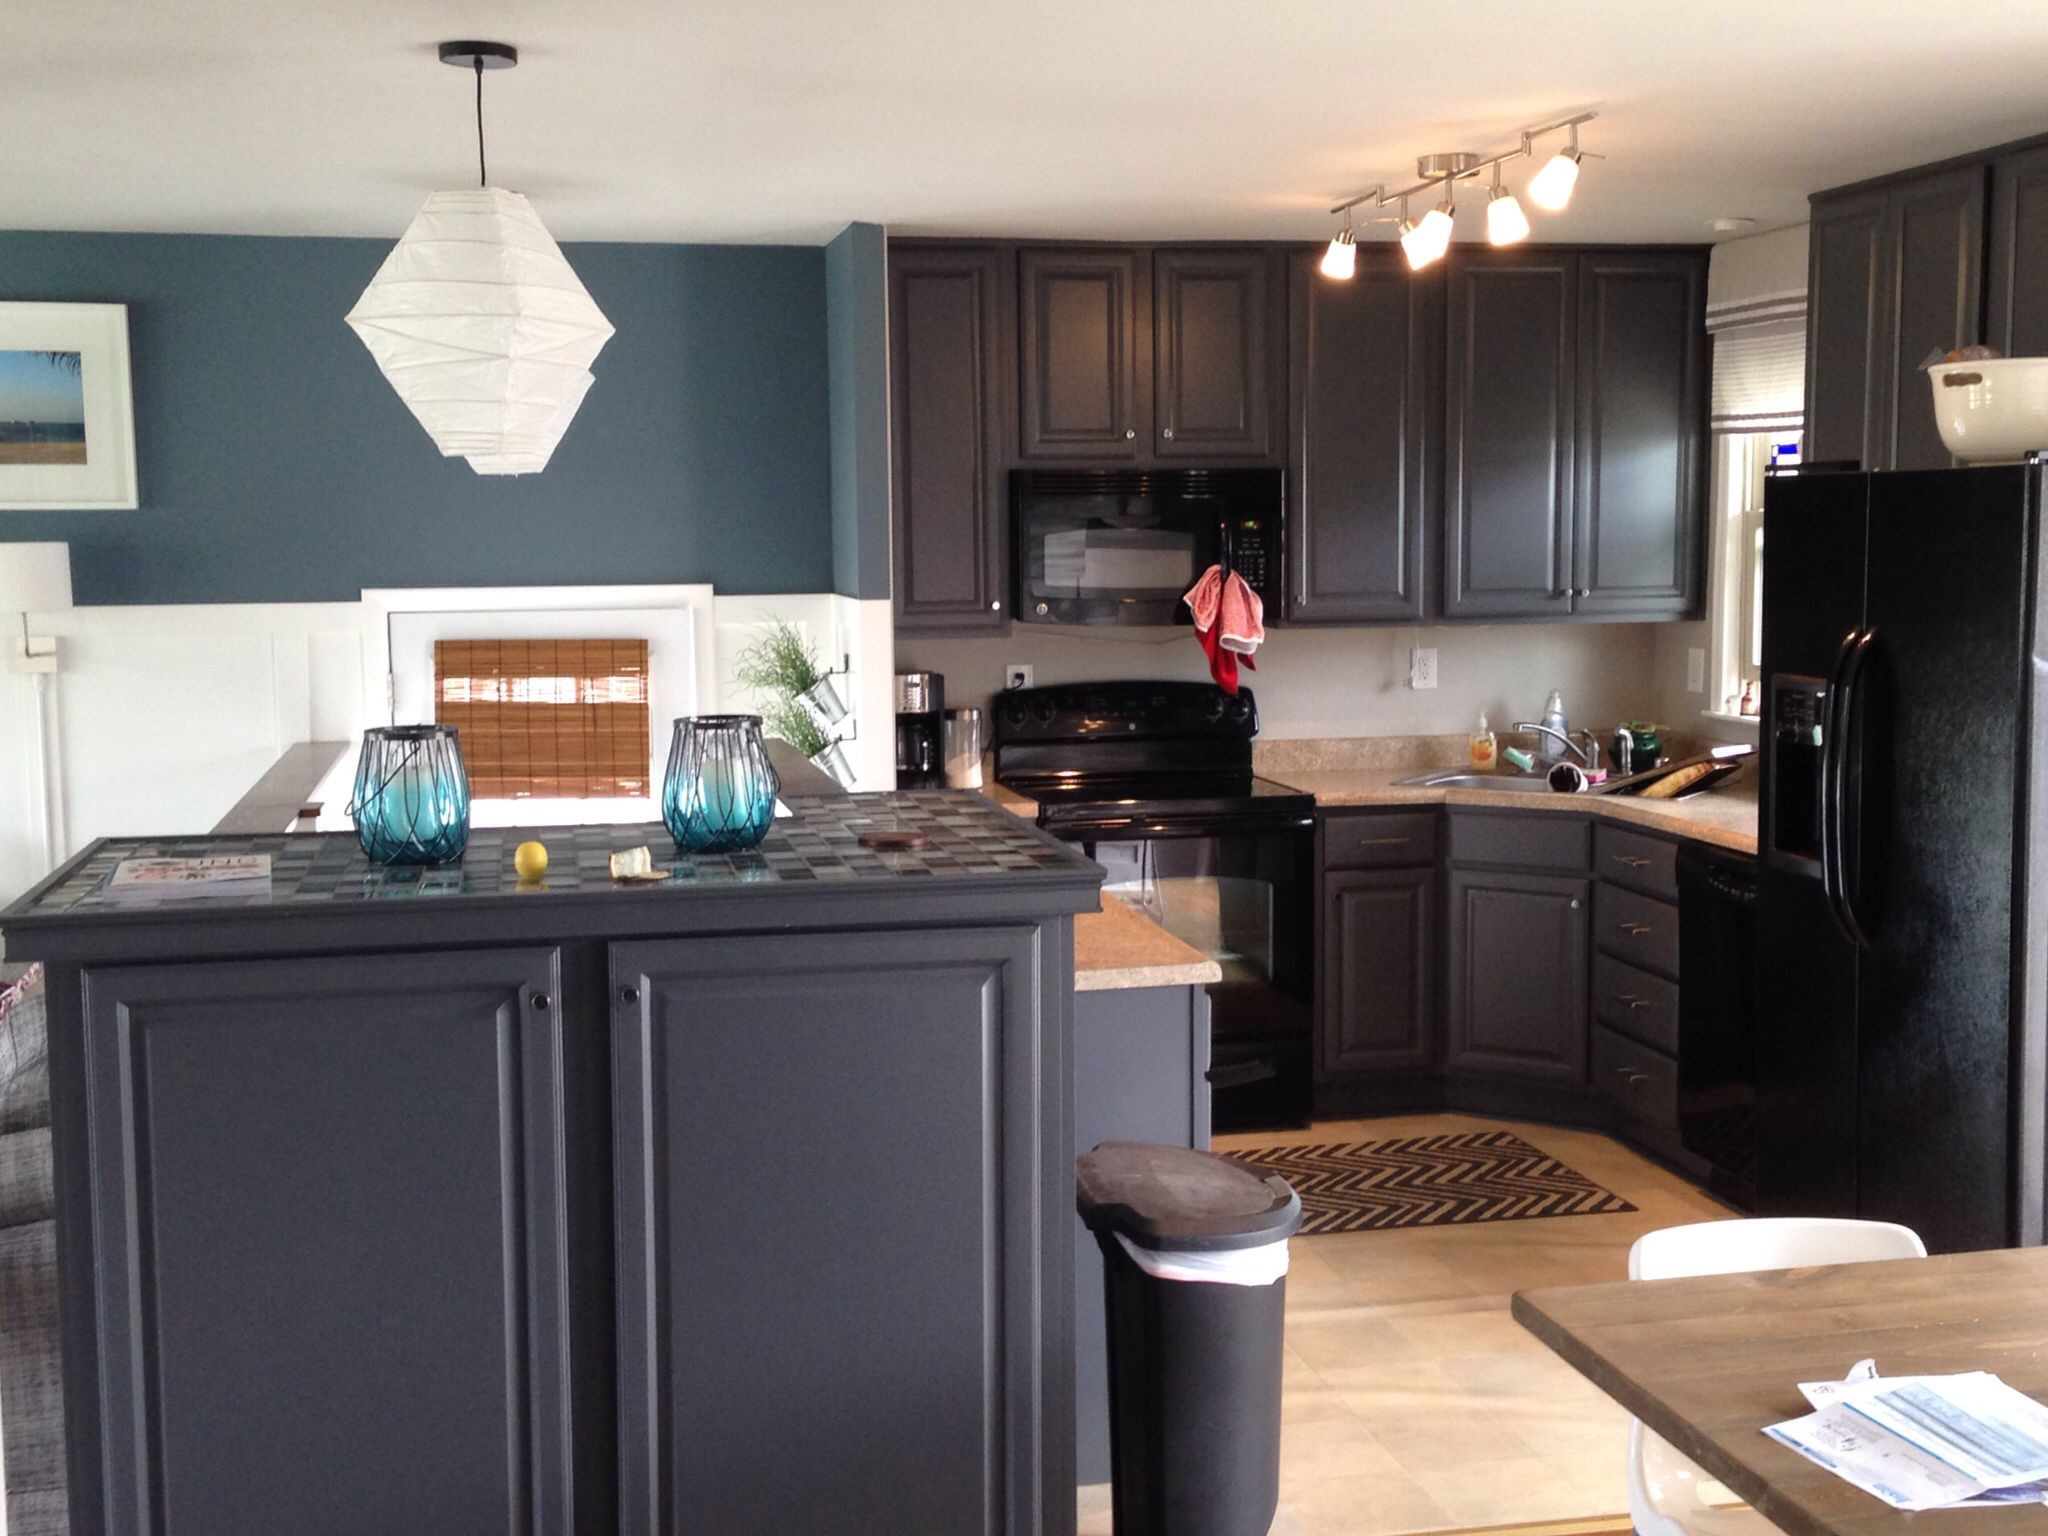 Sherwin-williams Countertop Paint My Kitchen Blue Slate Walls And Peppercorn Cabinets By Sherwin